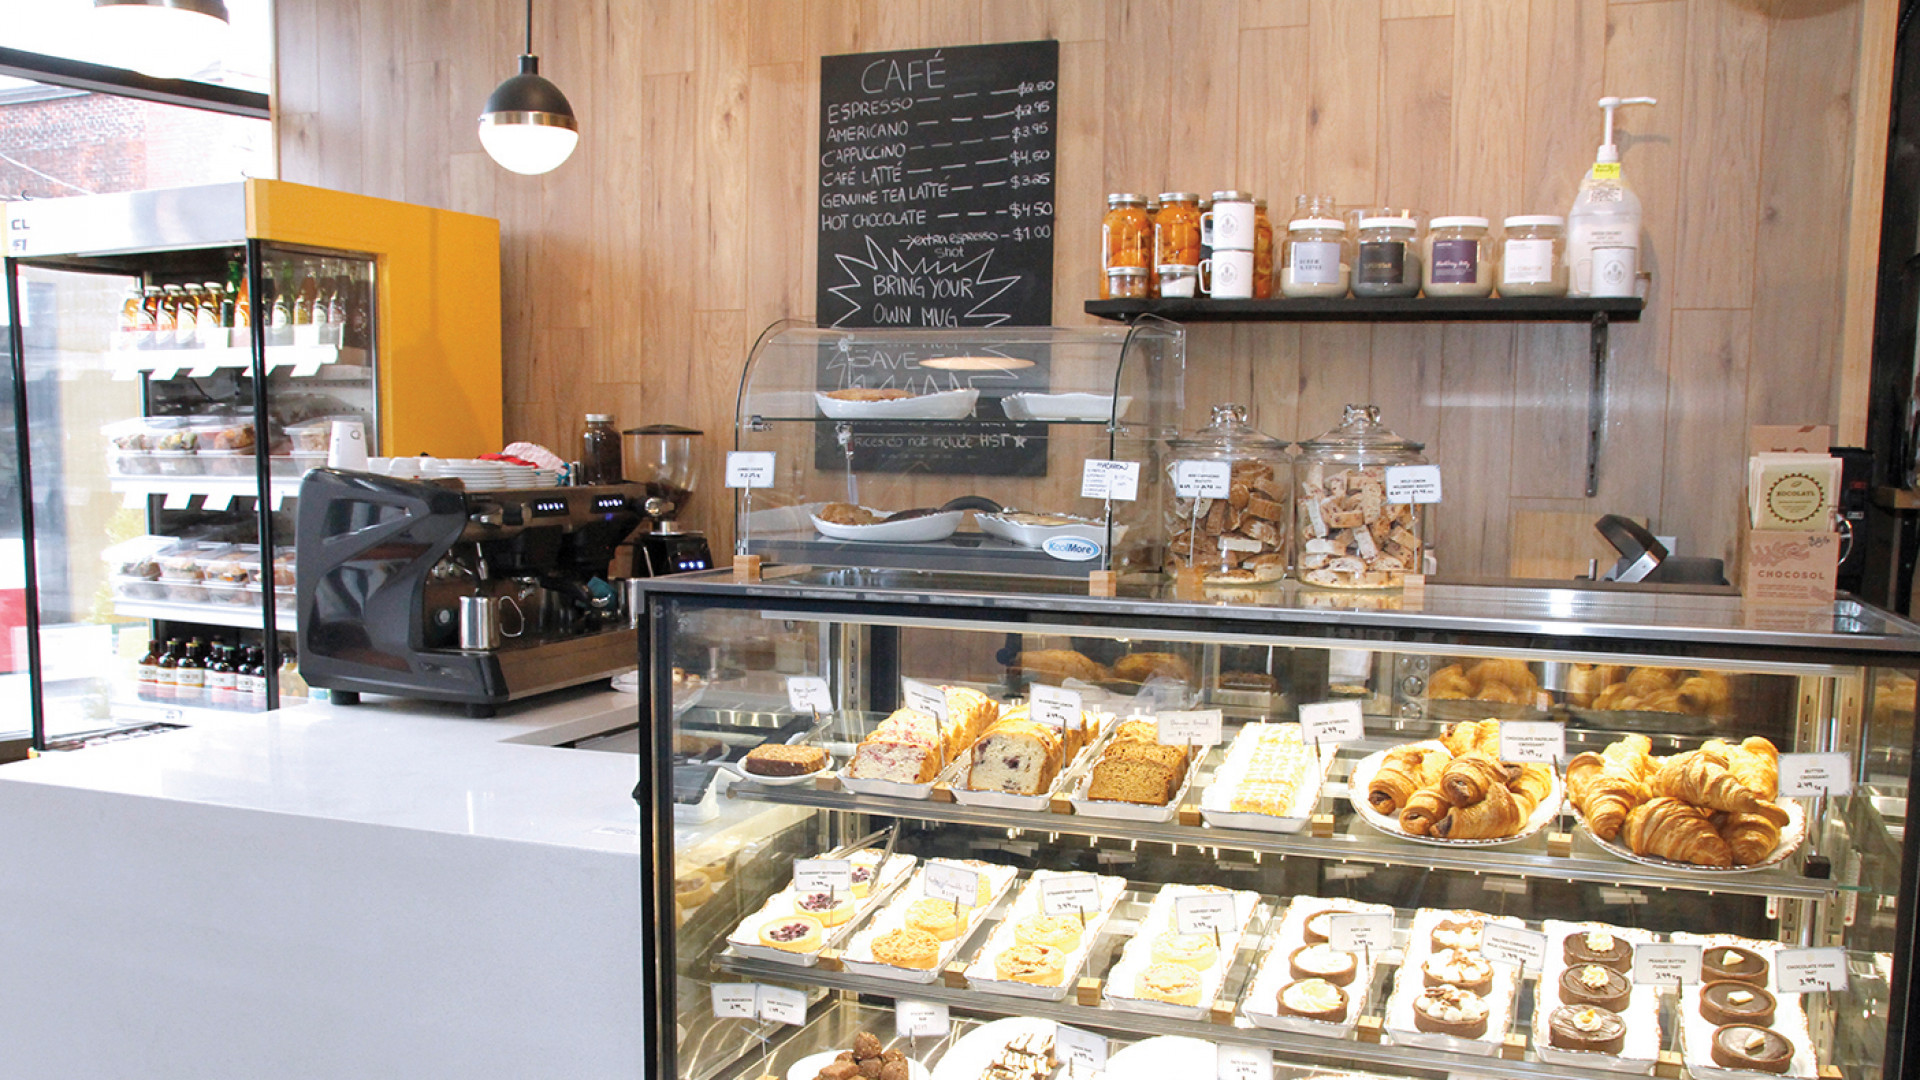 Unboxed Market, Zero waste grocery store and refillery | Coffee and pastries are available in the café corner of the store